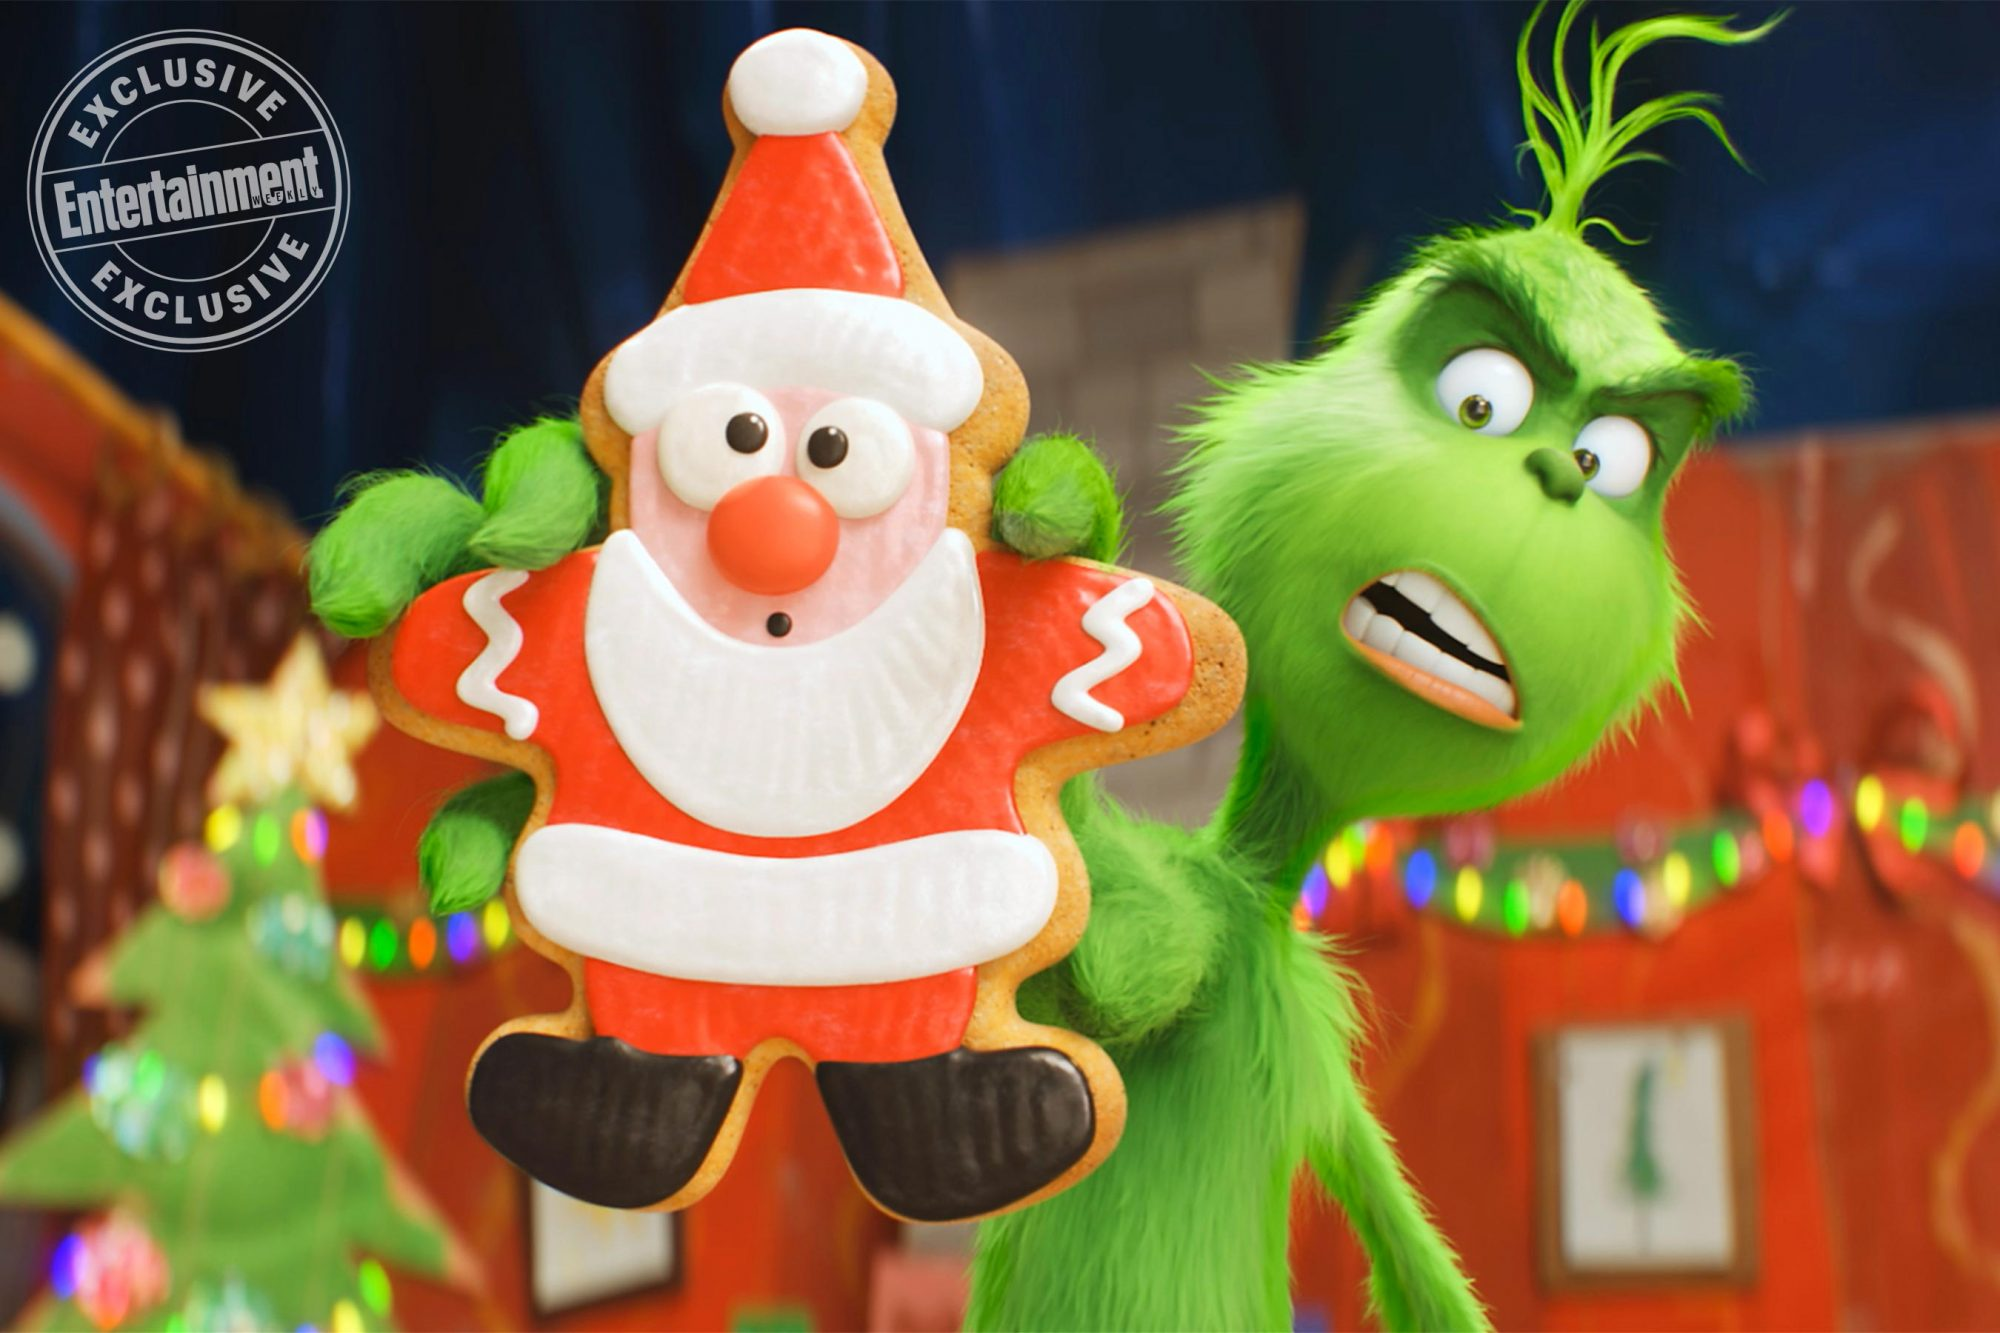 Dr. Seuss' The GrinchThe Grinch (voiced by Benedict Cumberbatch)